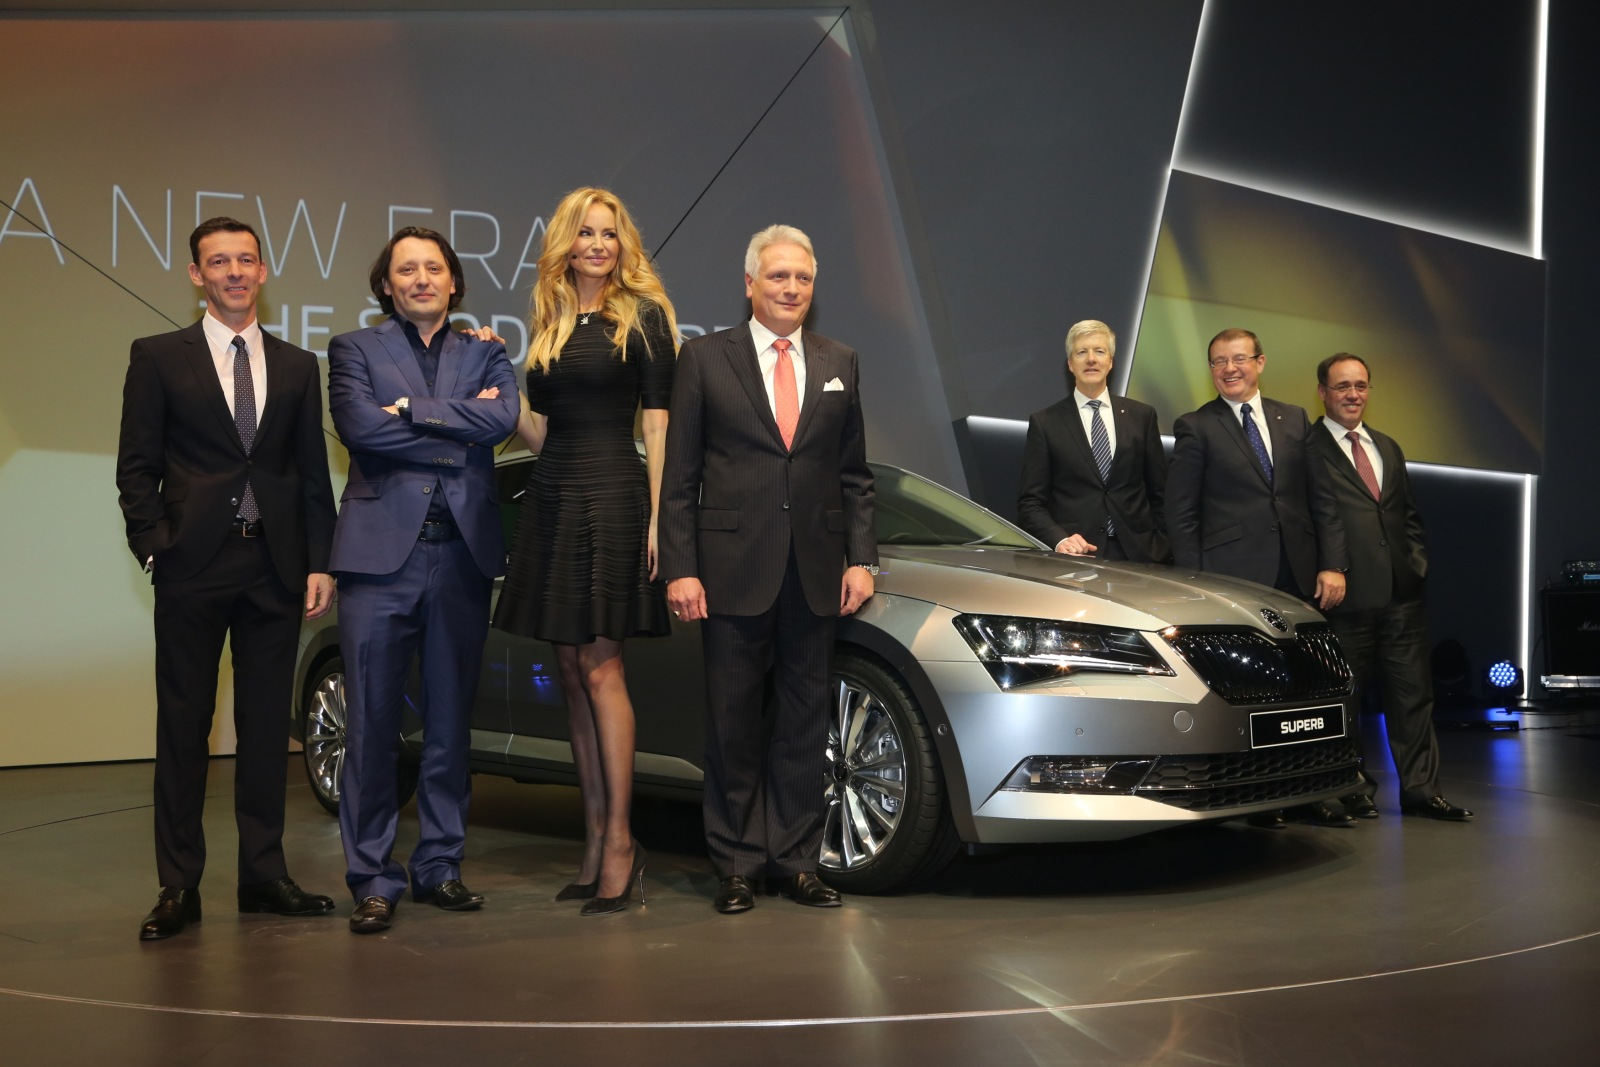 2015 Skoda Superb lifback III. generation